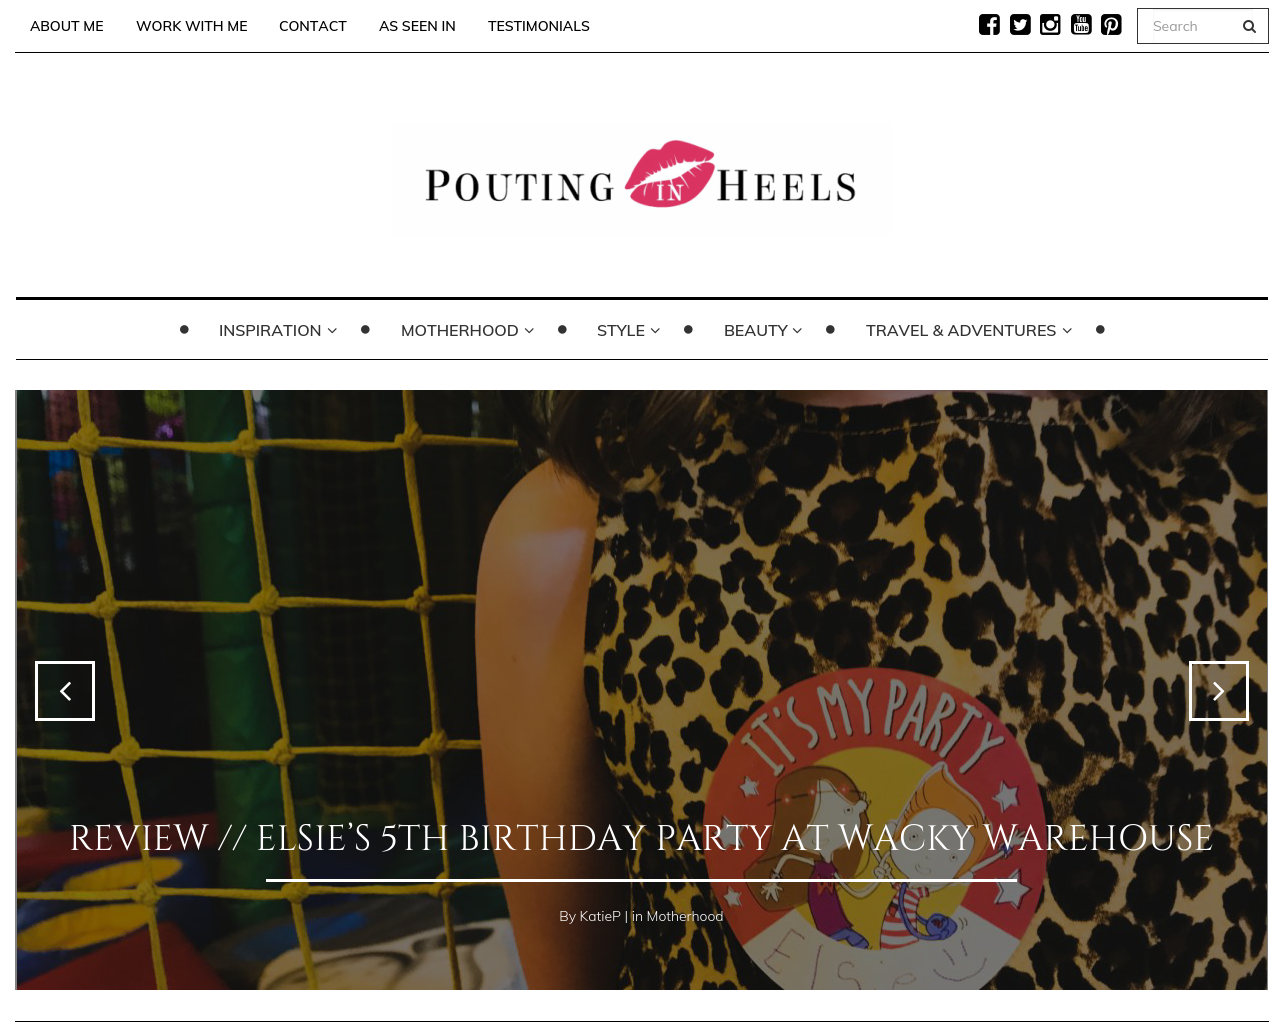 Pouting-In-Heels-Advertising-Reviews-Pricing